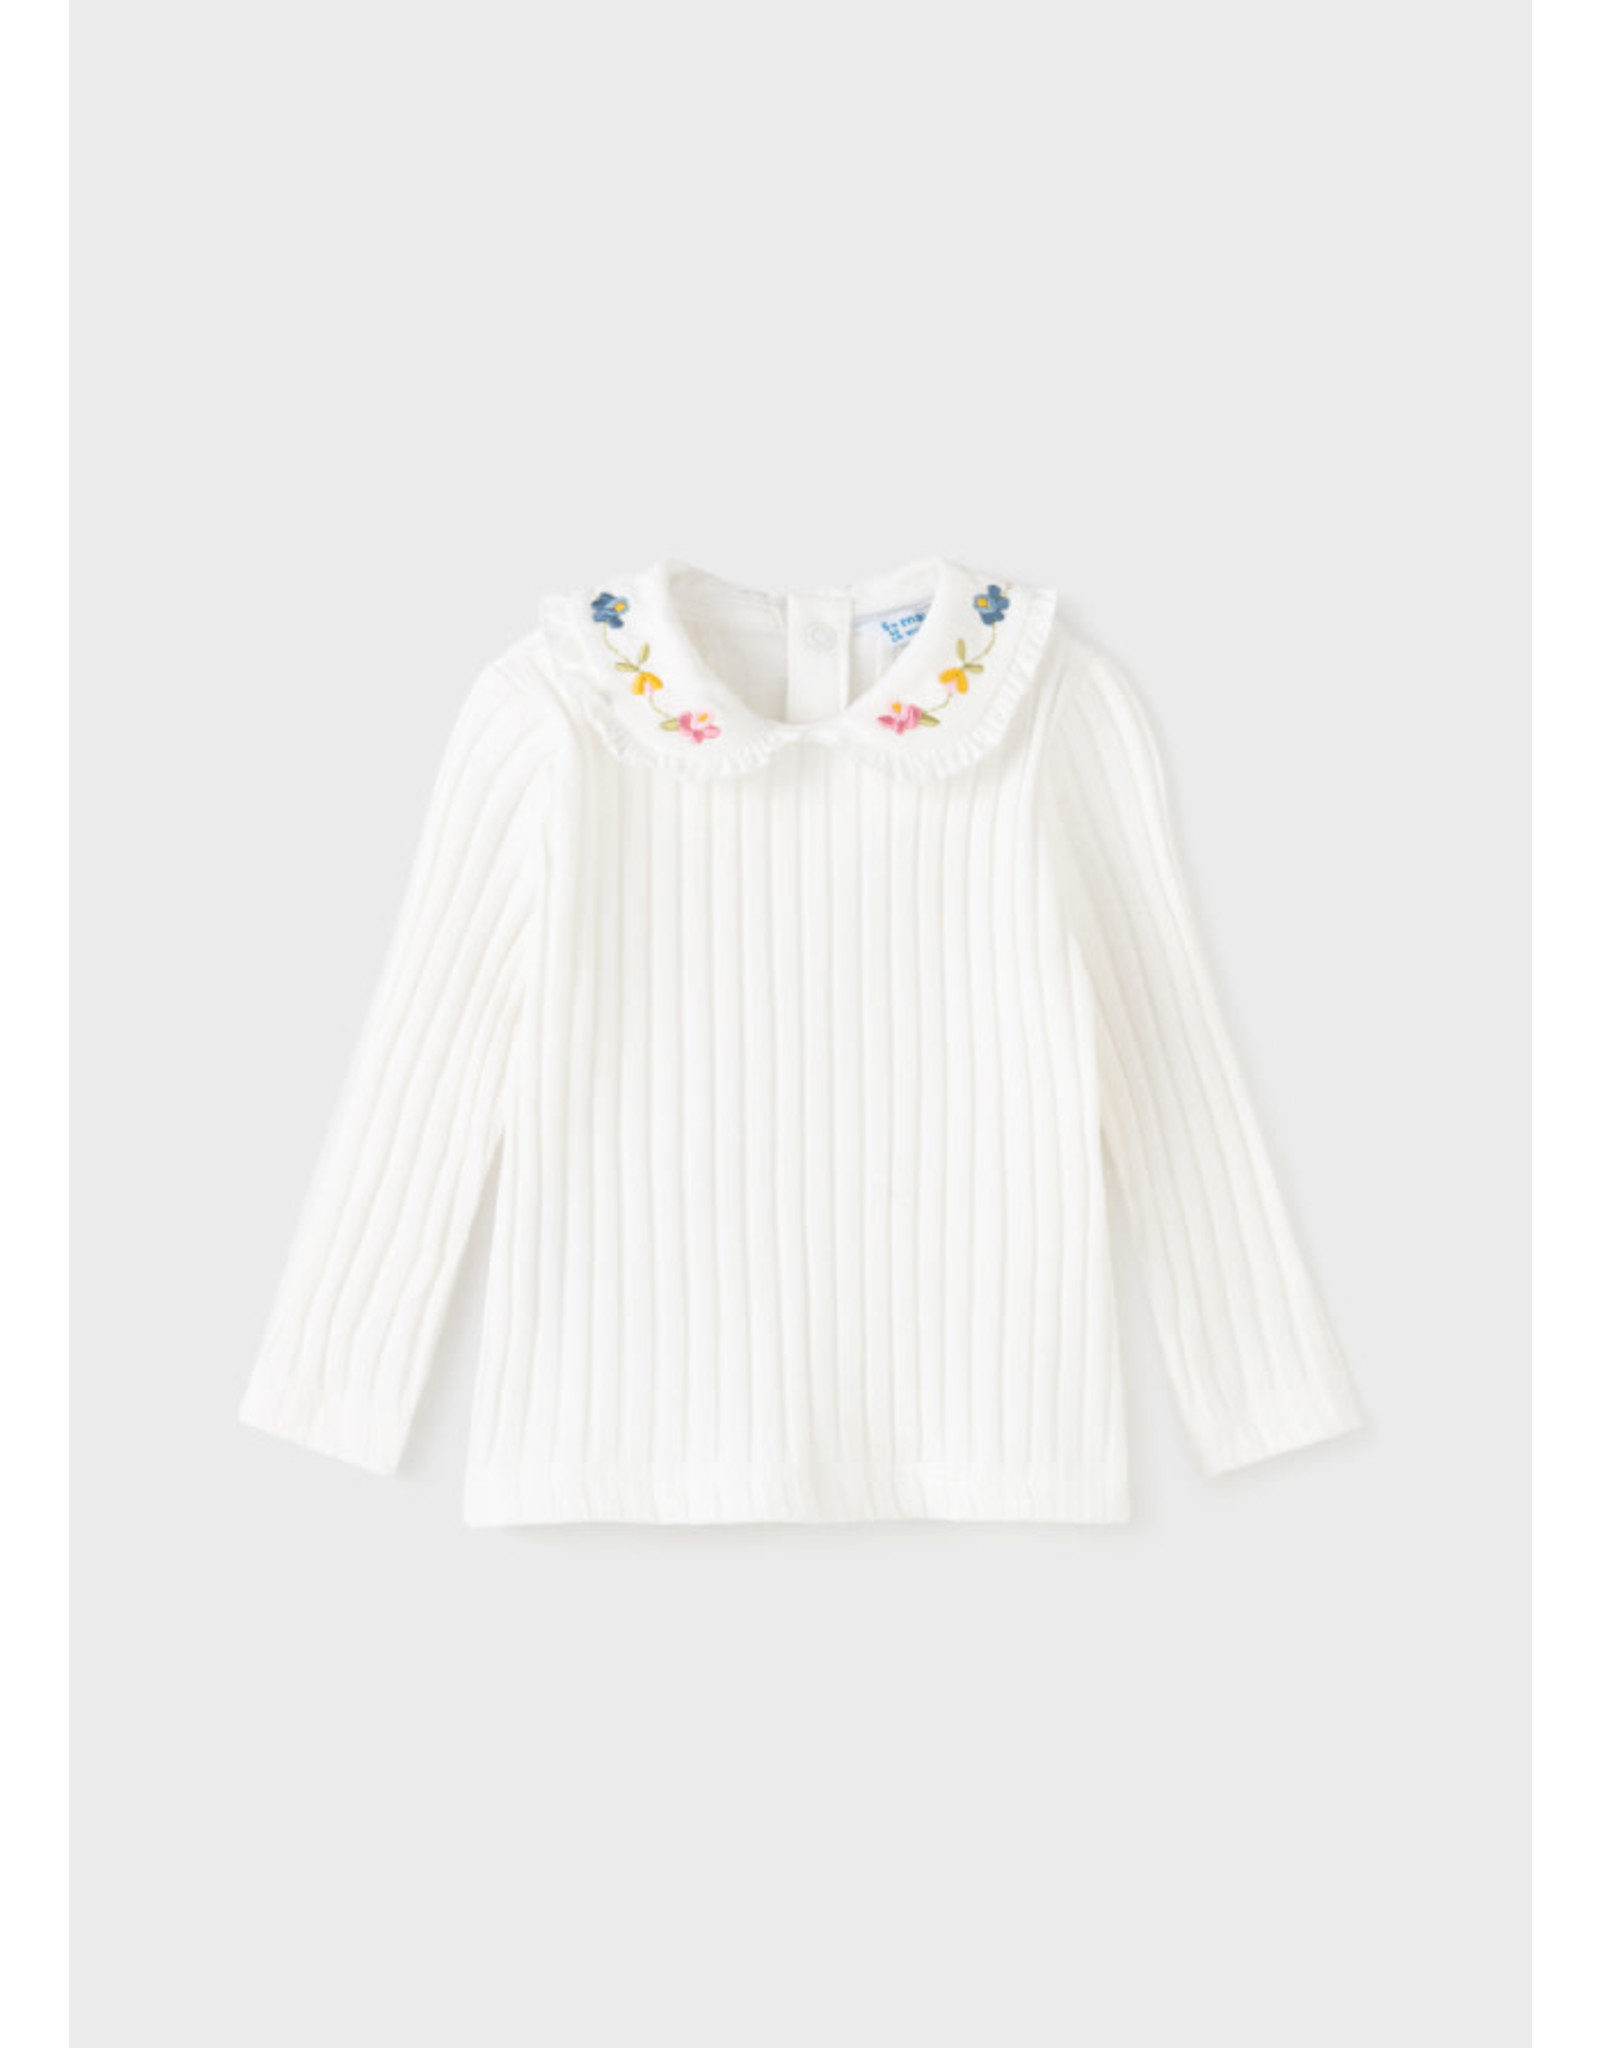 Mayoral Long Sleeve Knit with Floral Collar